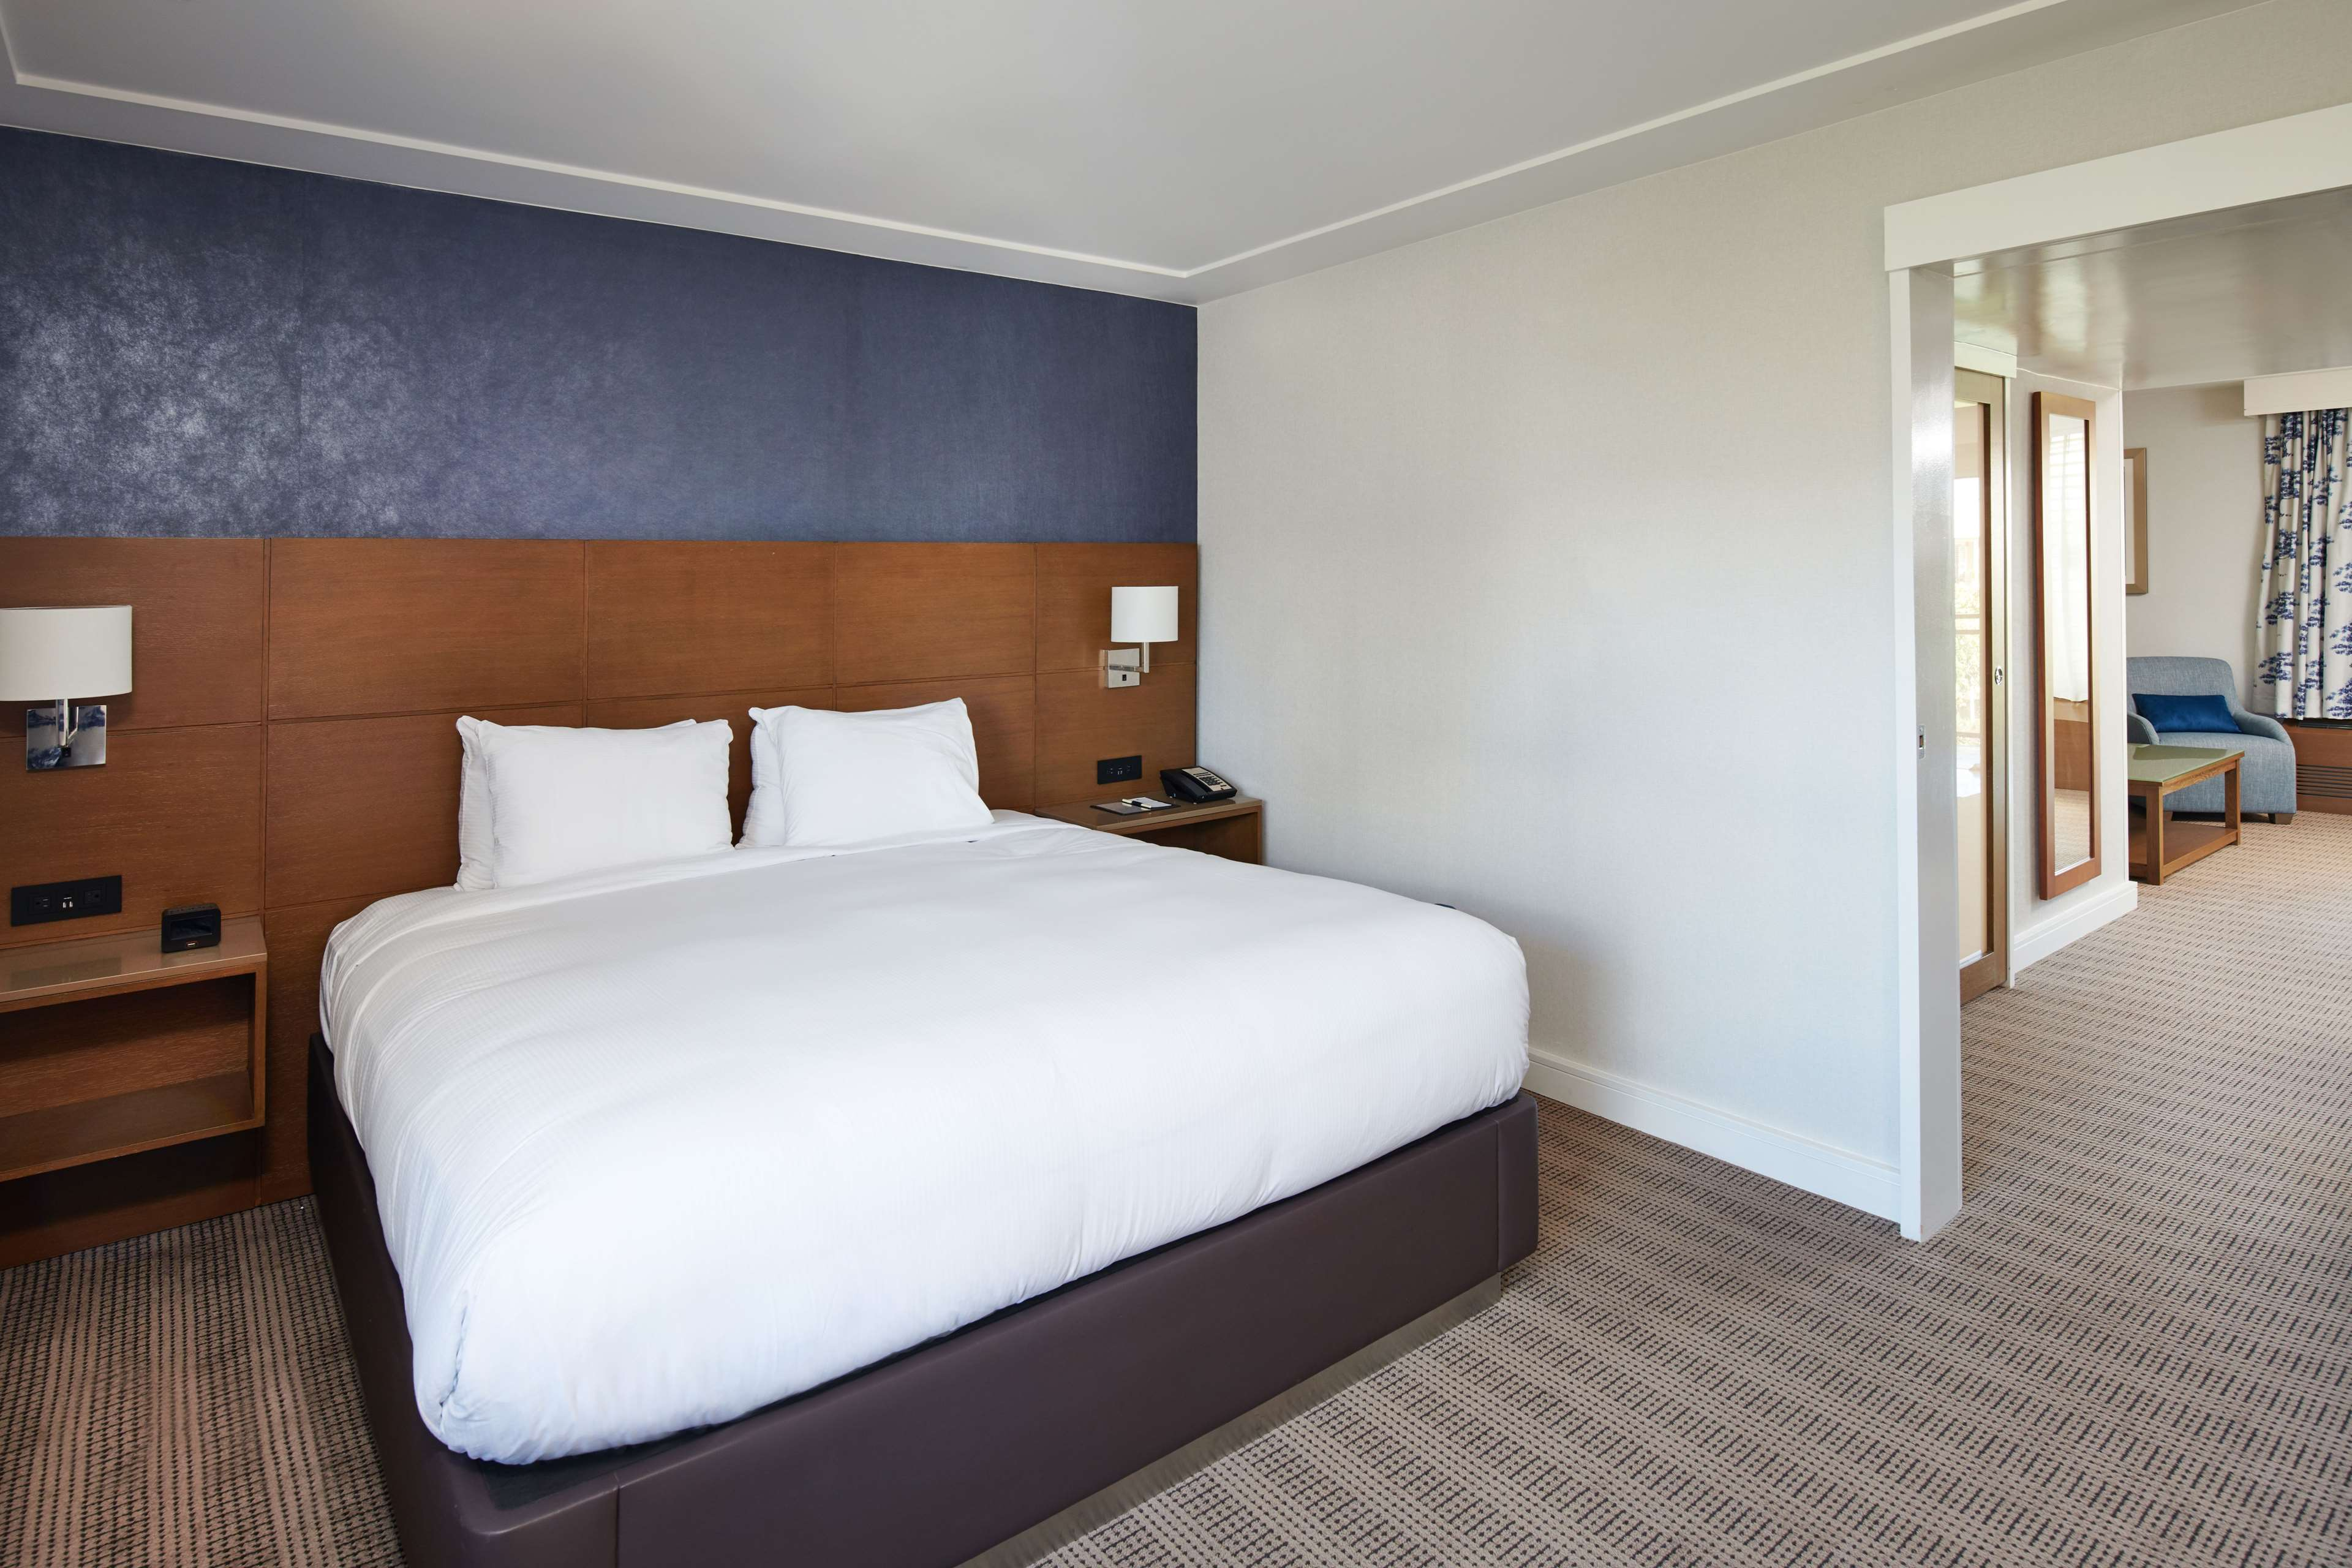 DoubleTree by Hilton Hotel Torrance - South Bay image 0